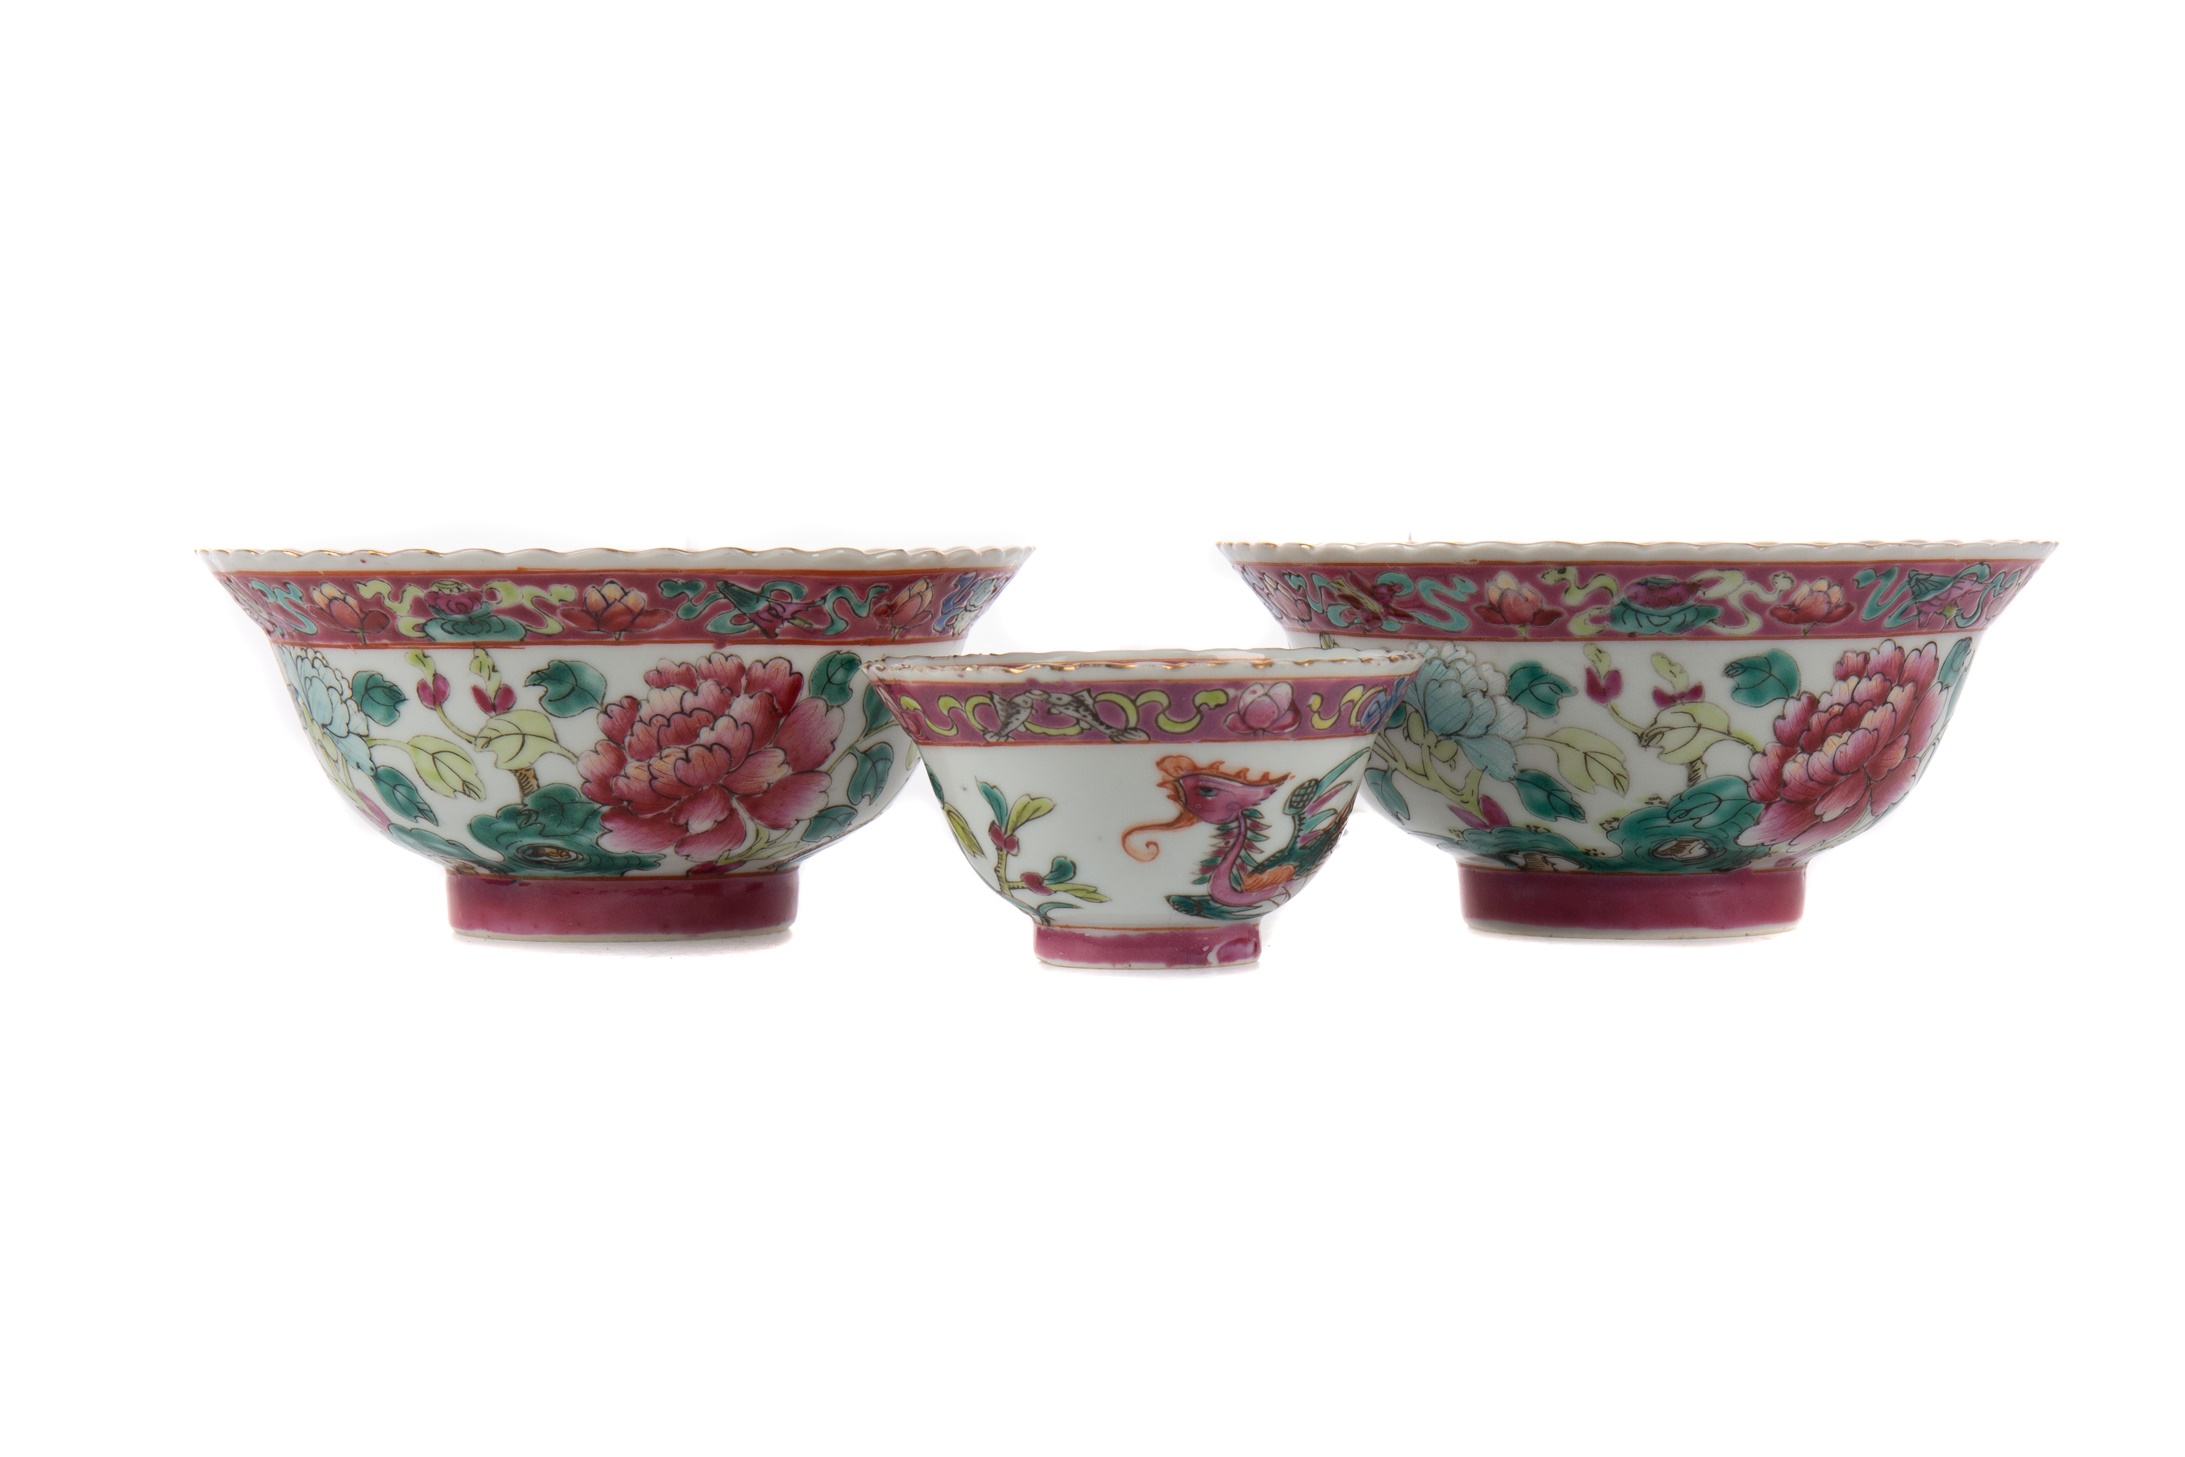 A PAIR OF 20TH CENTURY CHINESE CIRCULAR BOWLS AND ANOTHER SMALLER BOWL